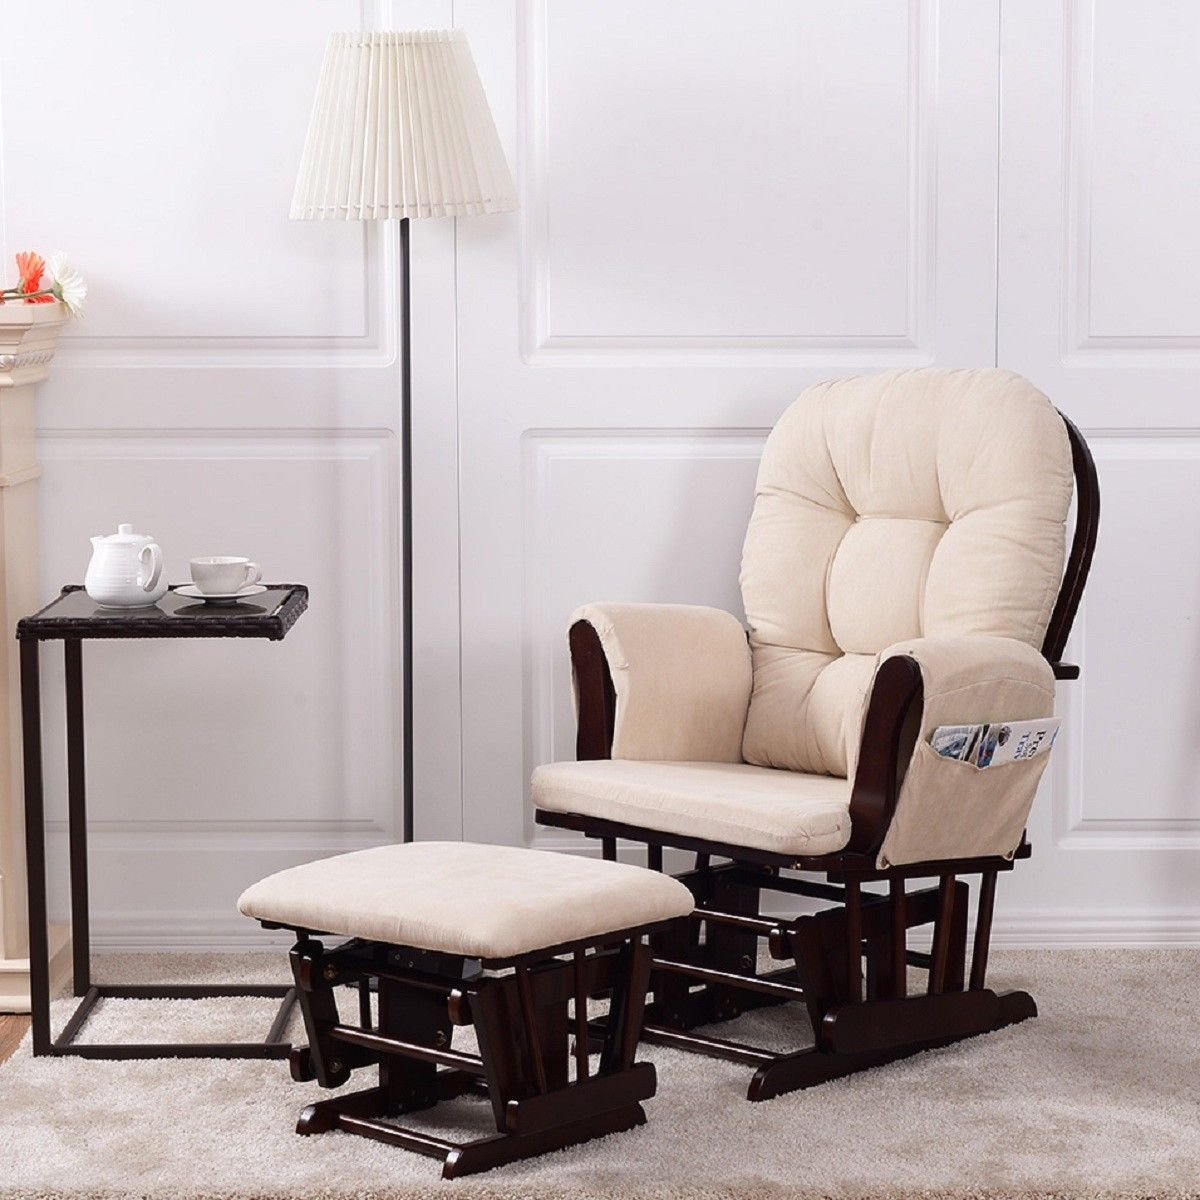 Costway Baby Nursery Relax Rocker Rocking Chair Glider & Ottoman